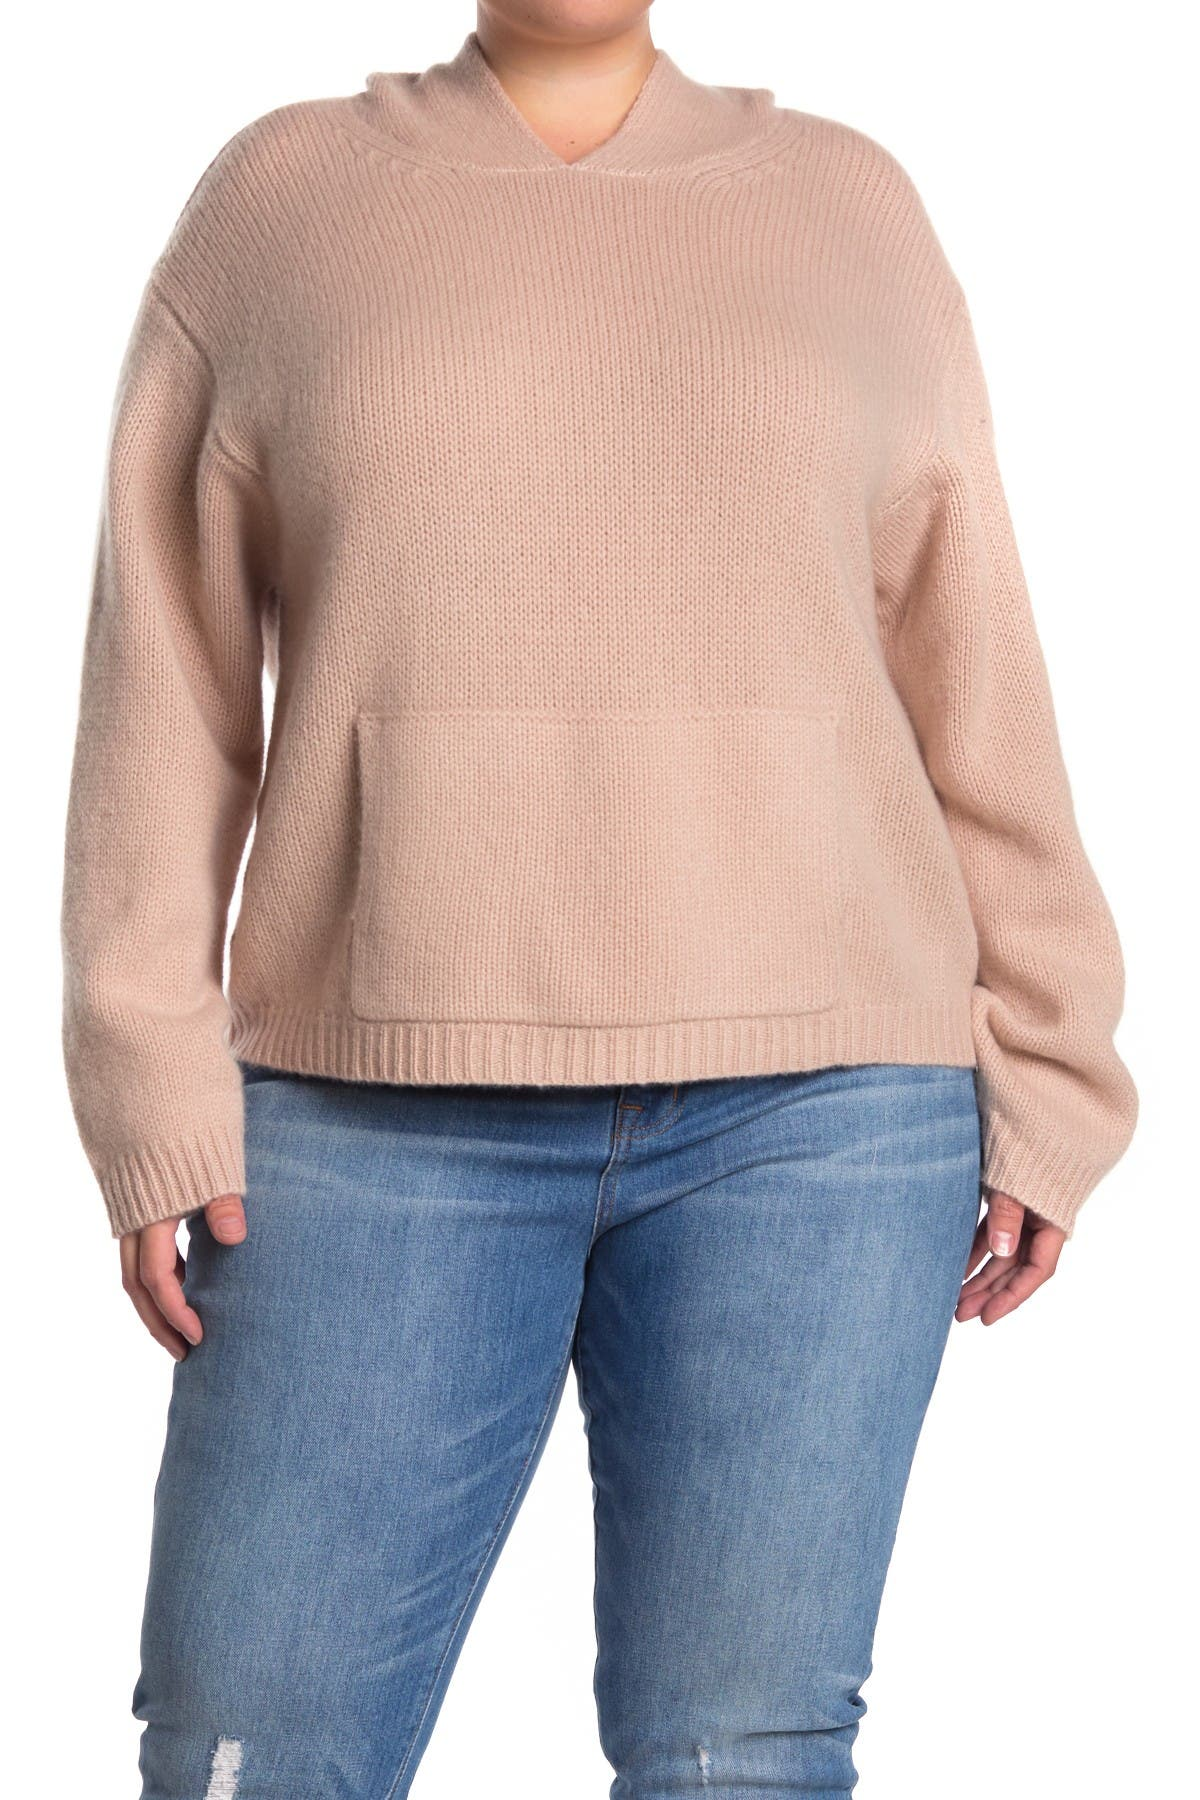 Image of Naked Cashmere Alani Cashmere Hoodie